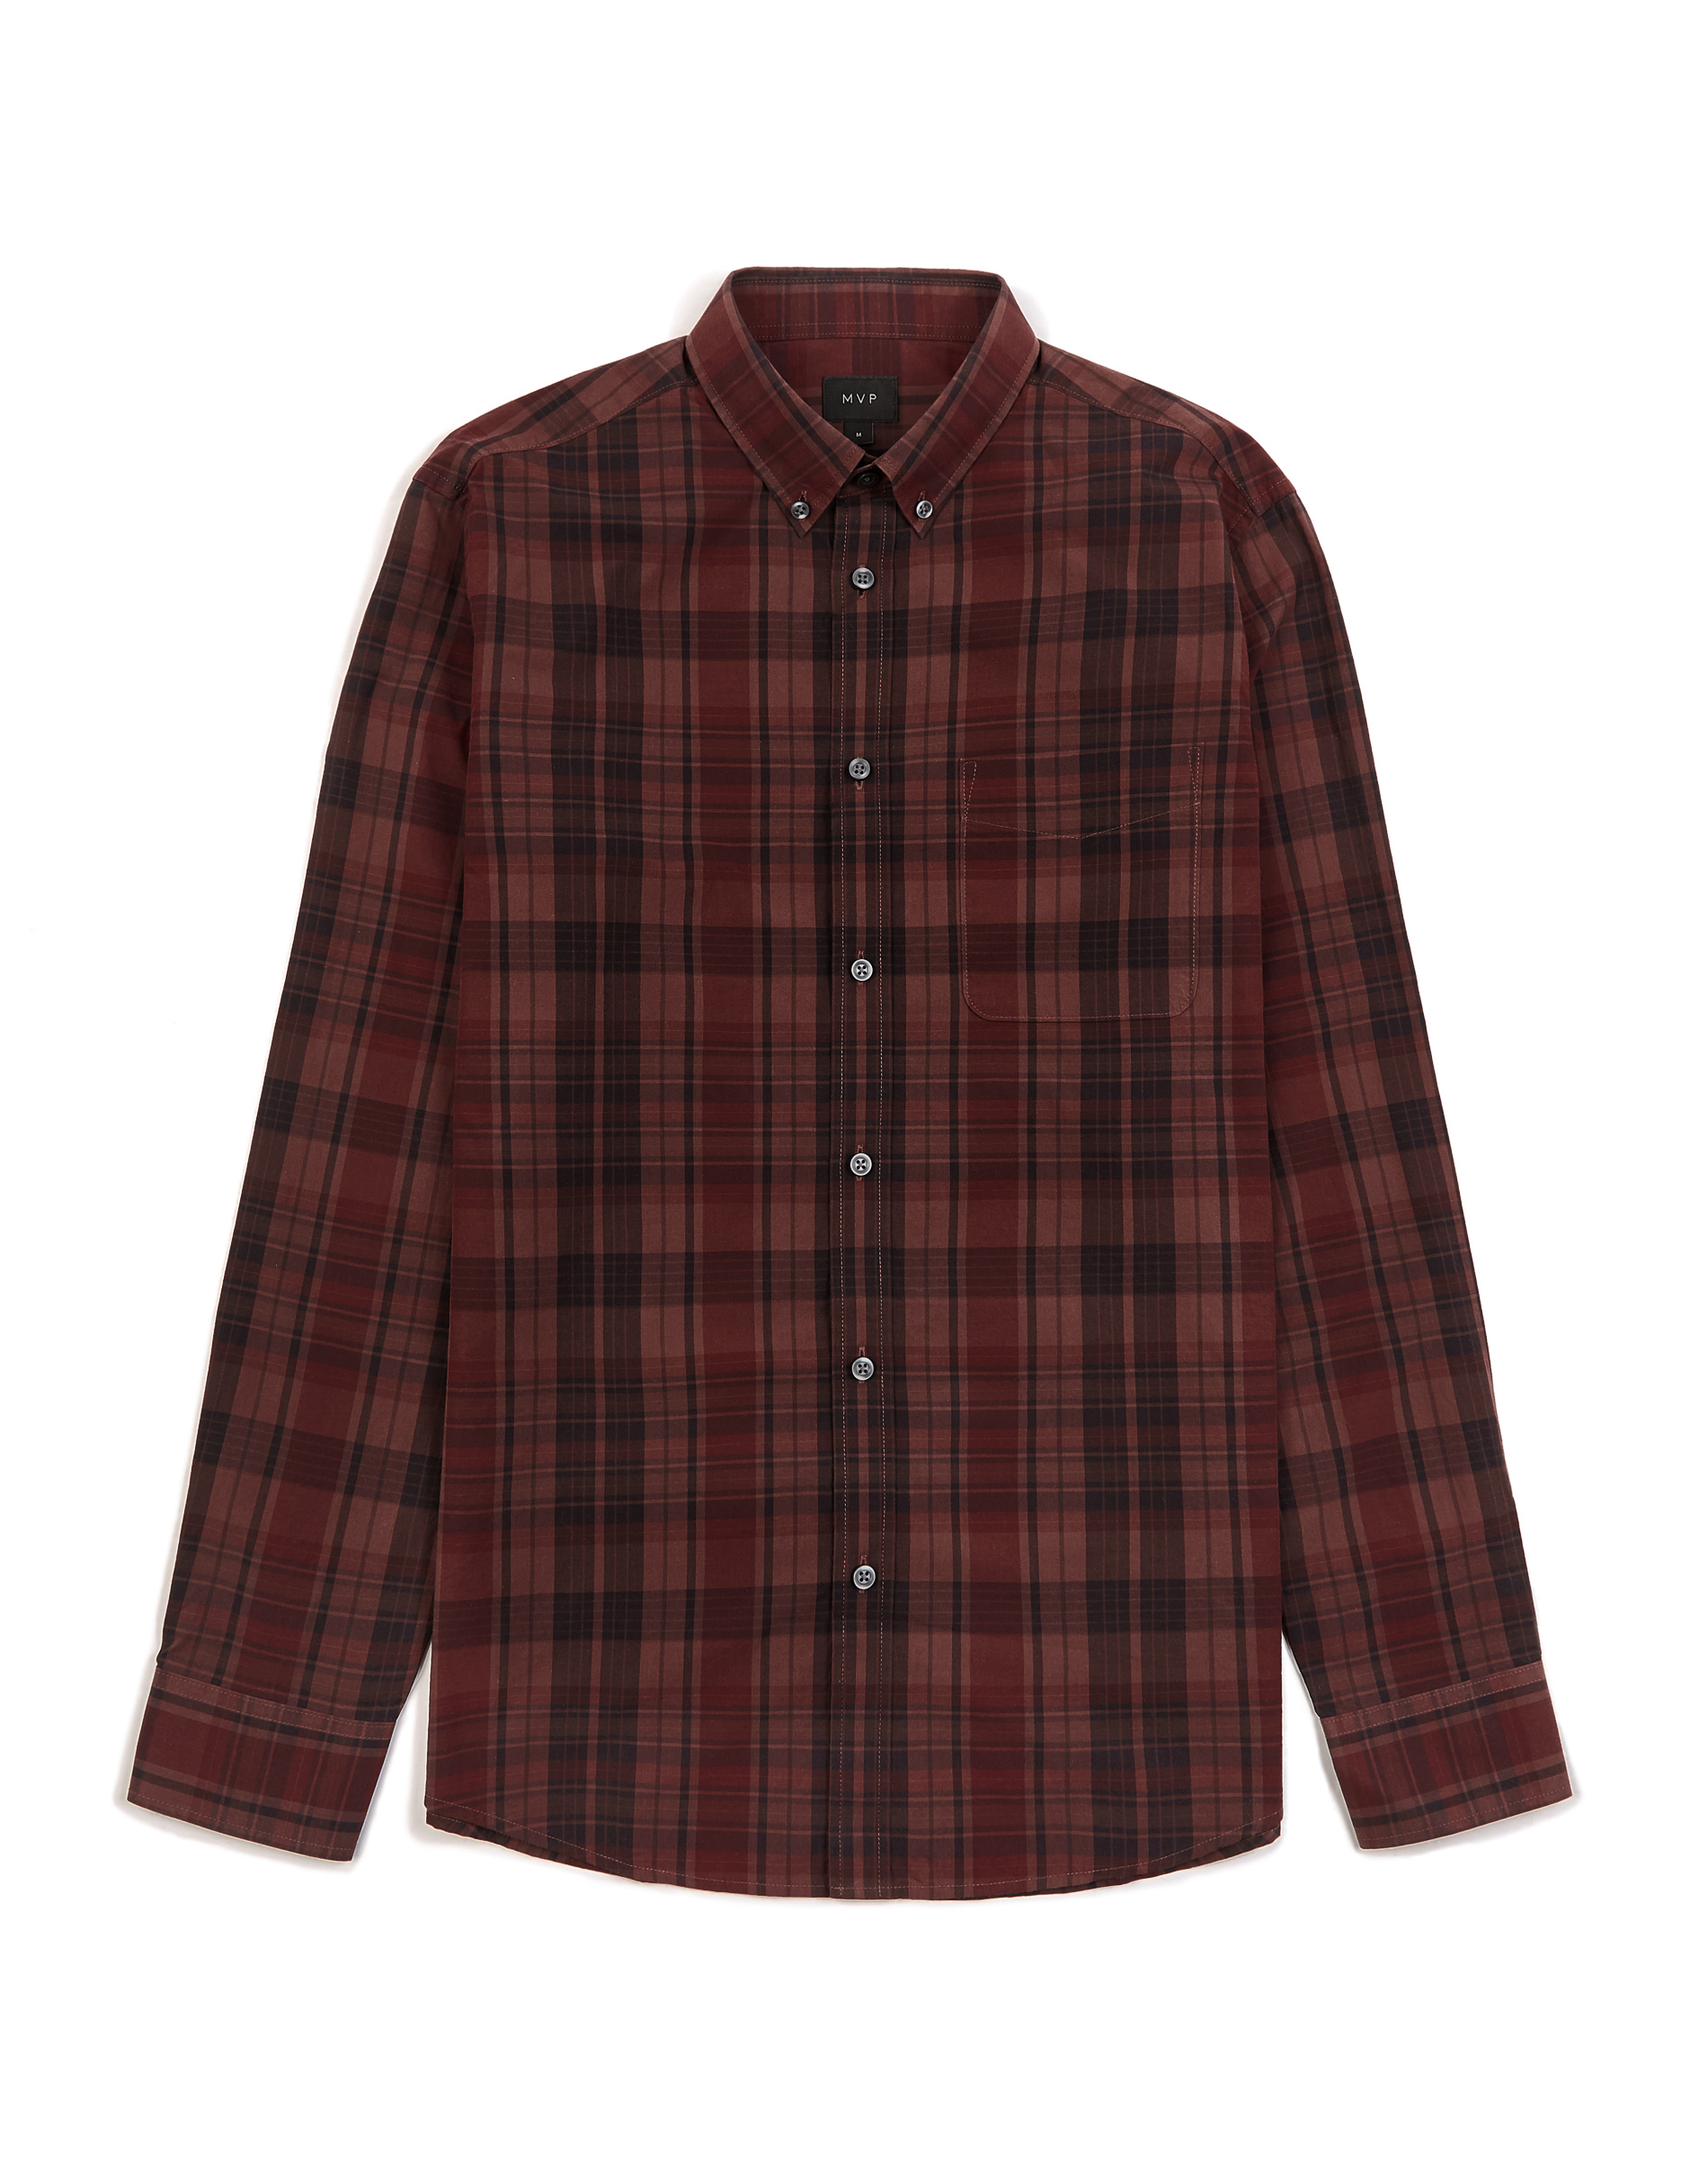 MVP BURGUNDY Buckhurst Poplin 3 Colour Check Shirt